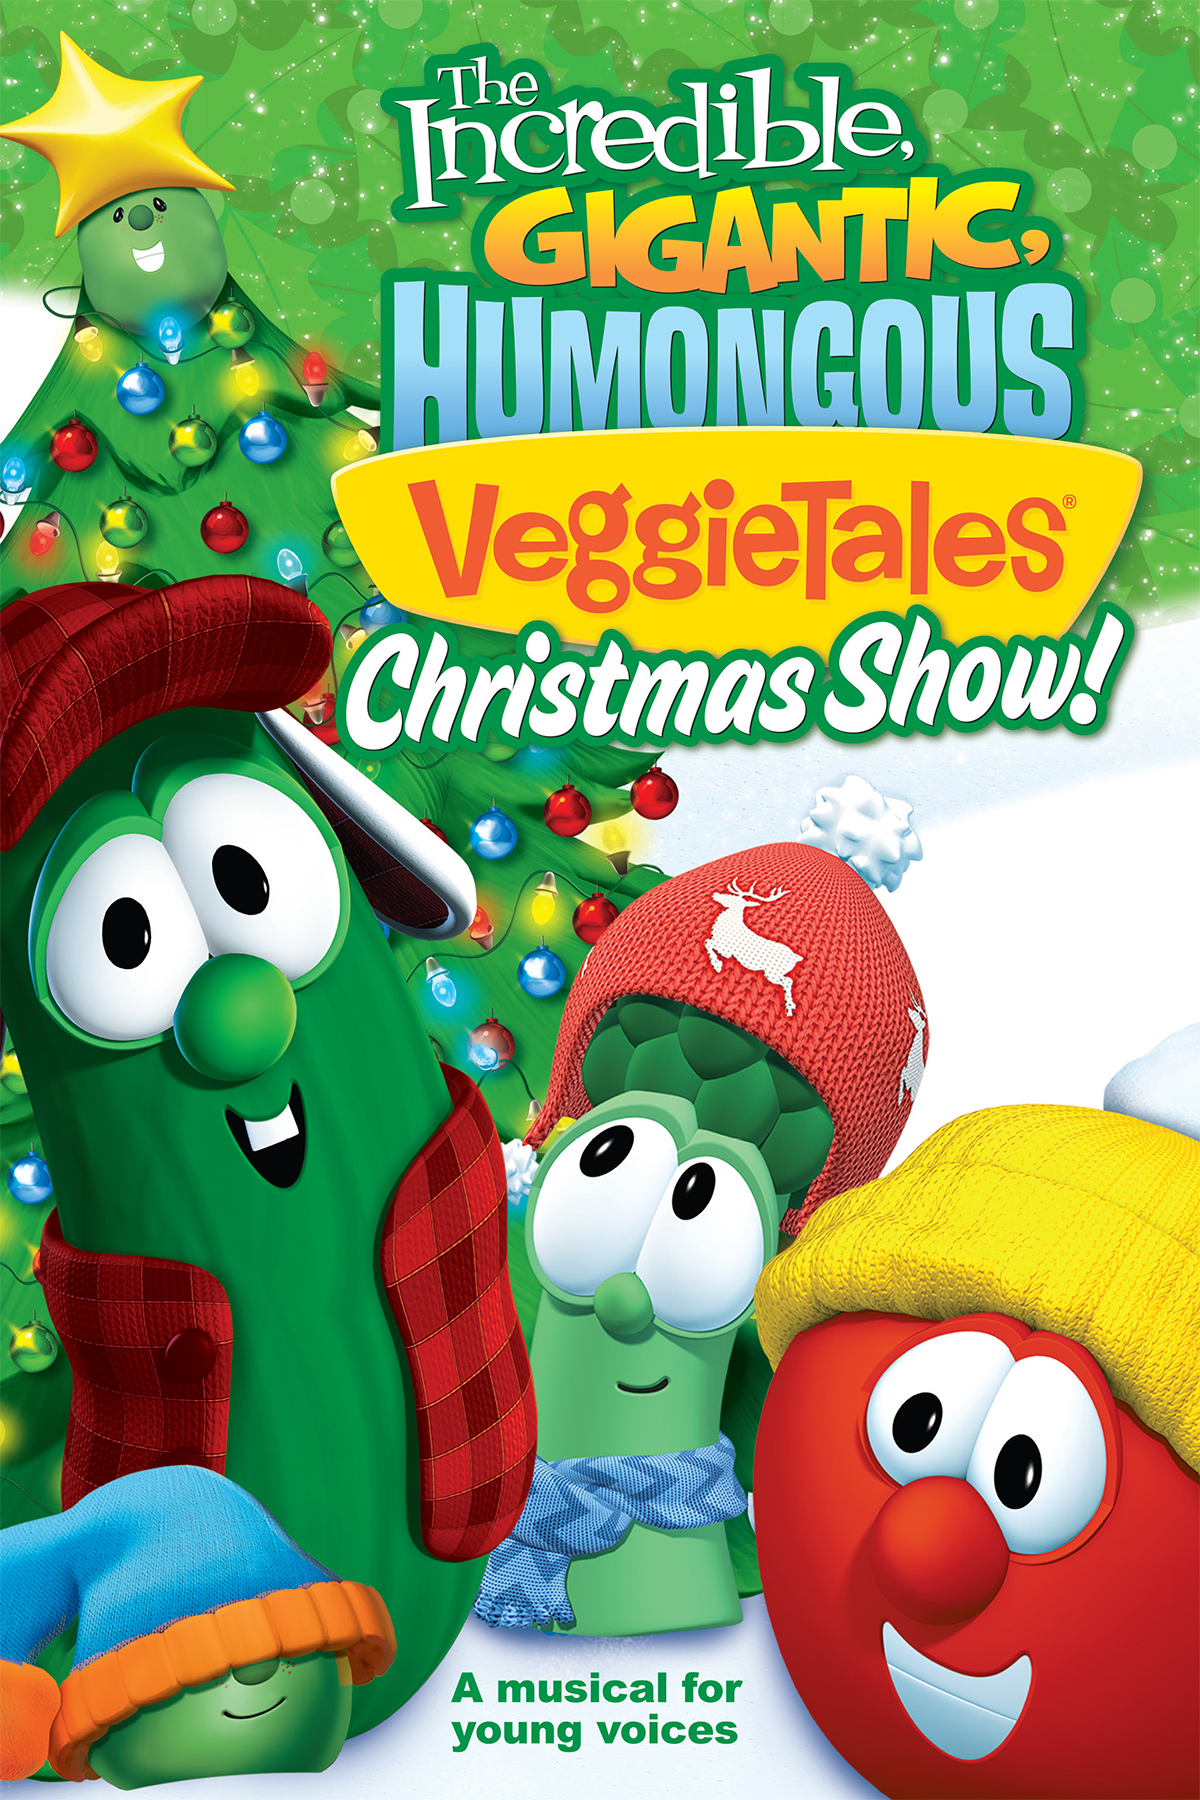 The Incredible, Gigantic, Humongous Veggietales Christmas Show